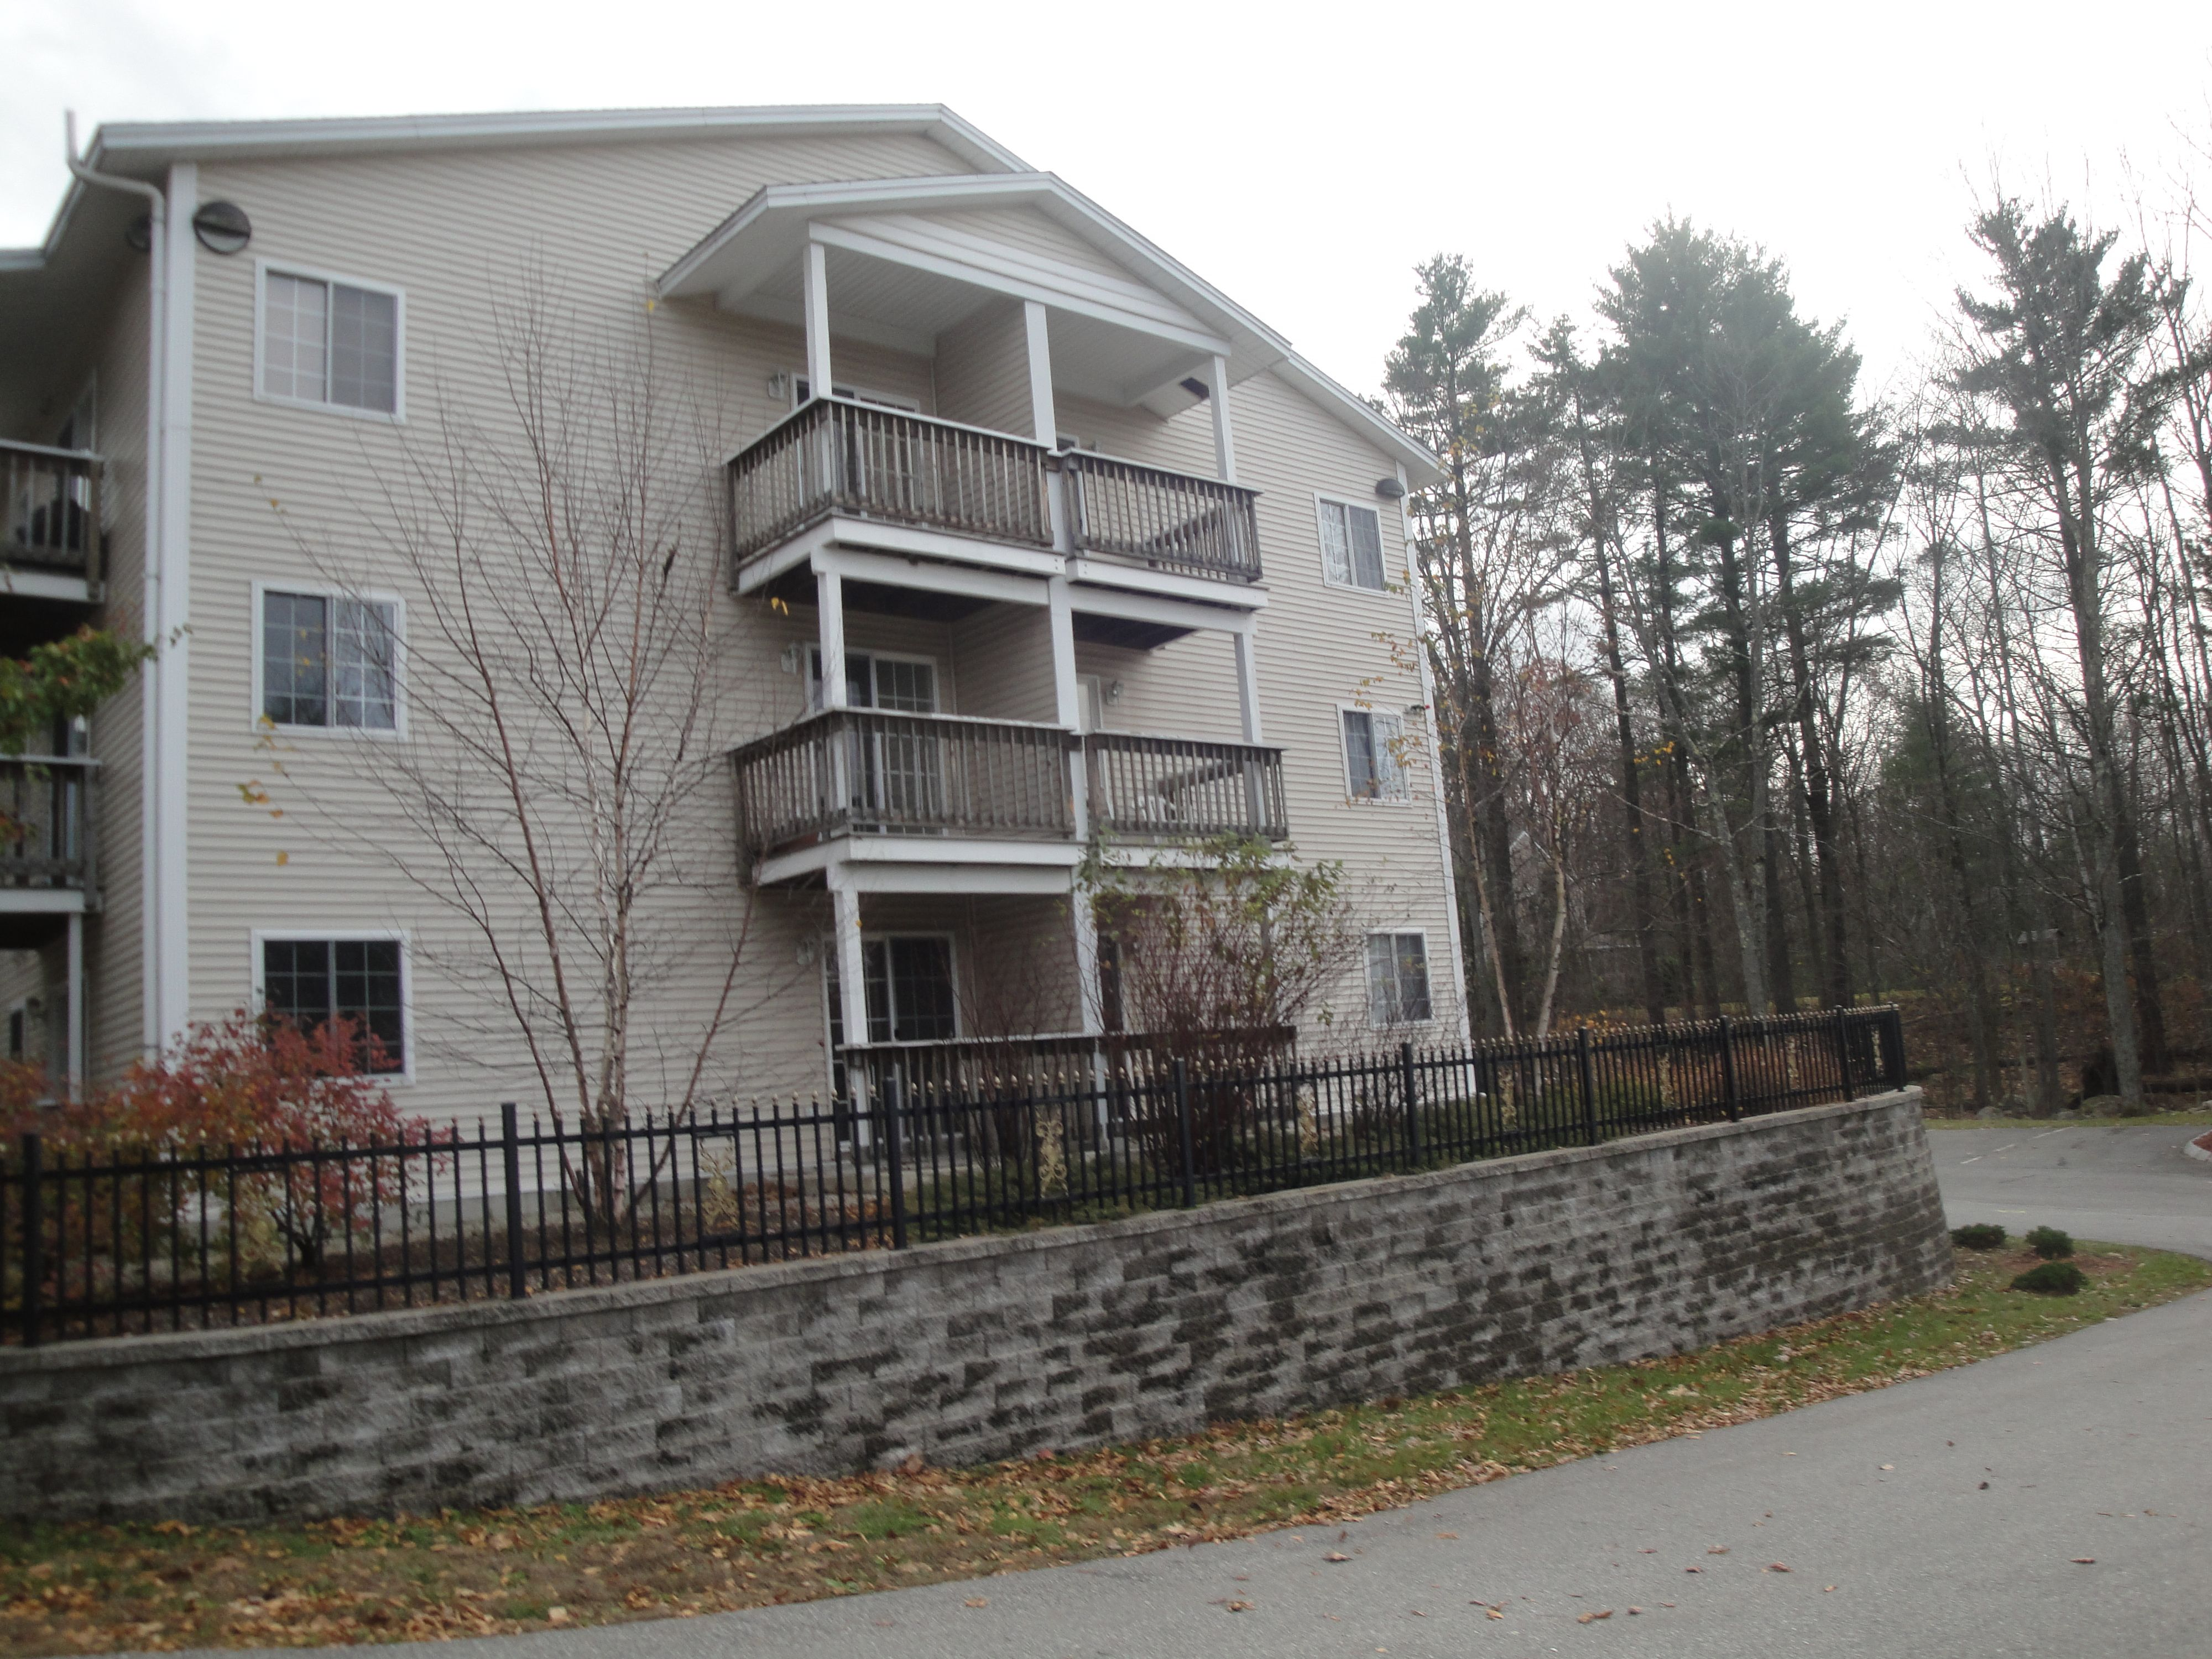 Great Location And Features At Hooksett Hollows Condos Located On 99 Mammoth Rd In NH Every Condo Has Granite Counter Top Stainless Steel